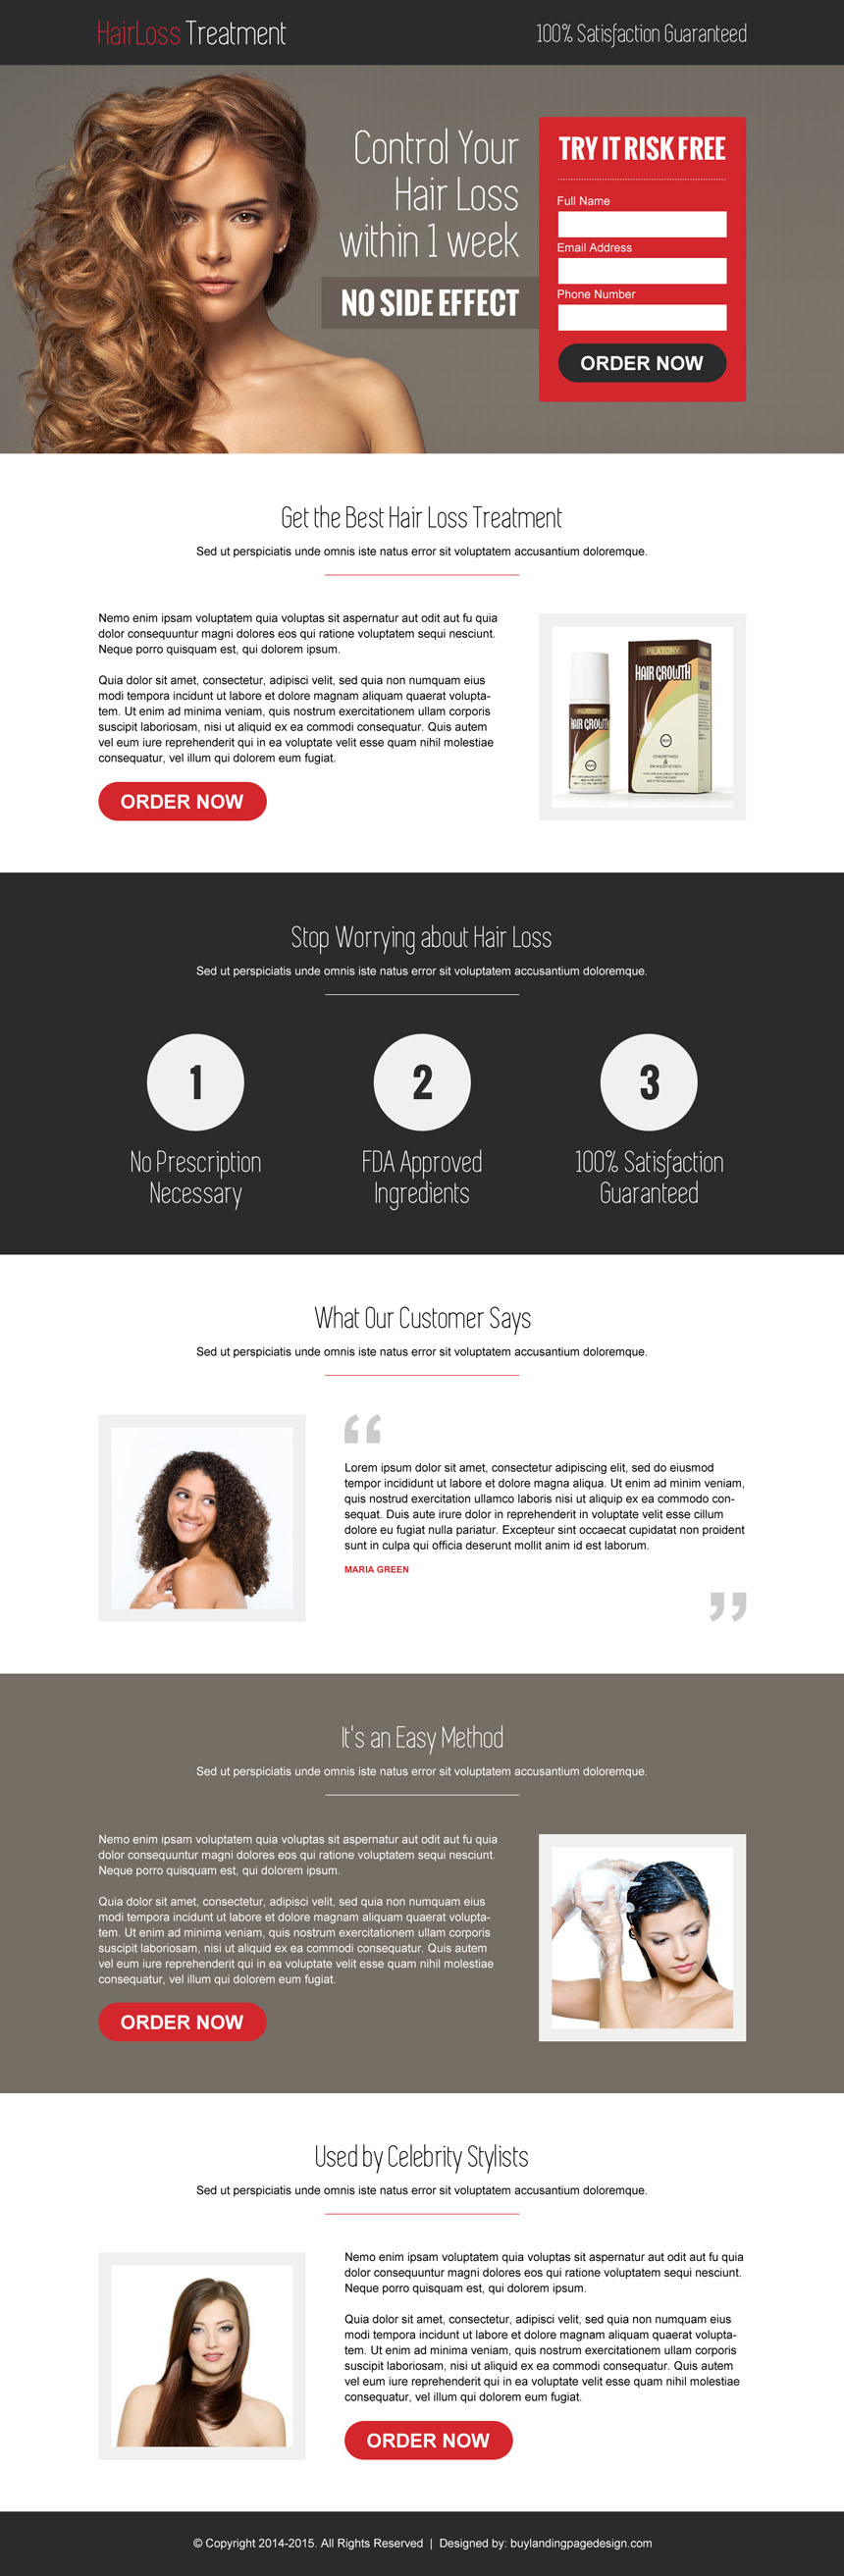 hair-product-selling-lead-capture-optimized-and-converting-landing-page-design-template-018